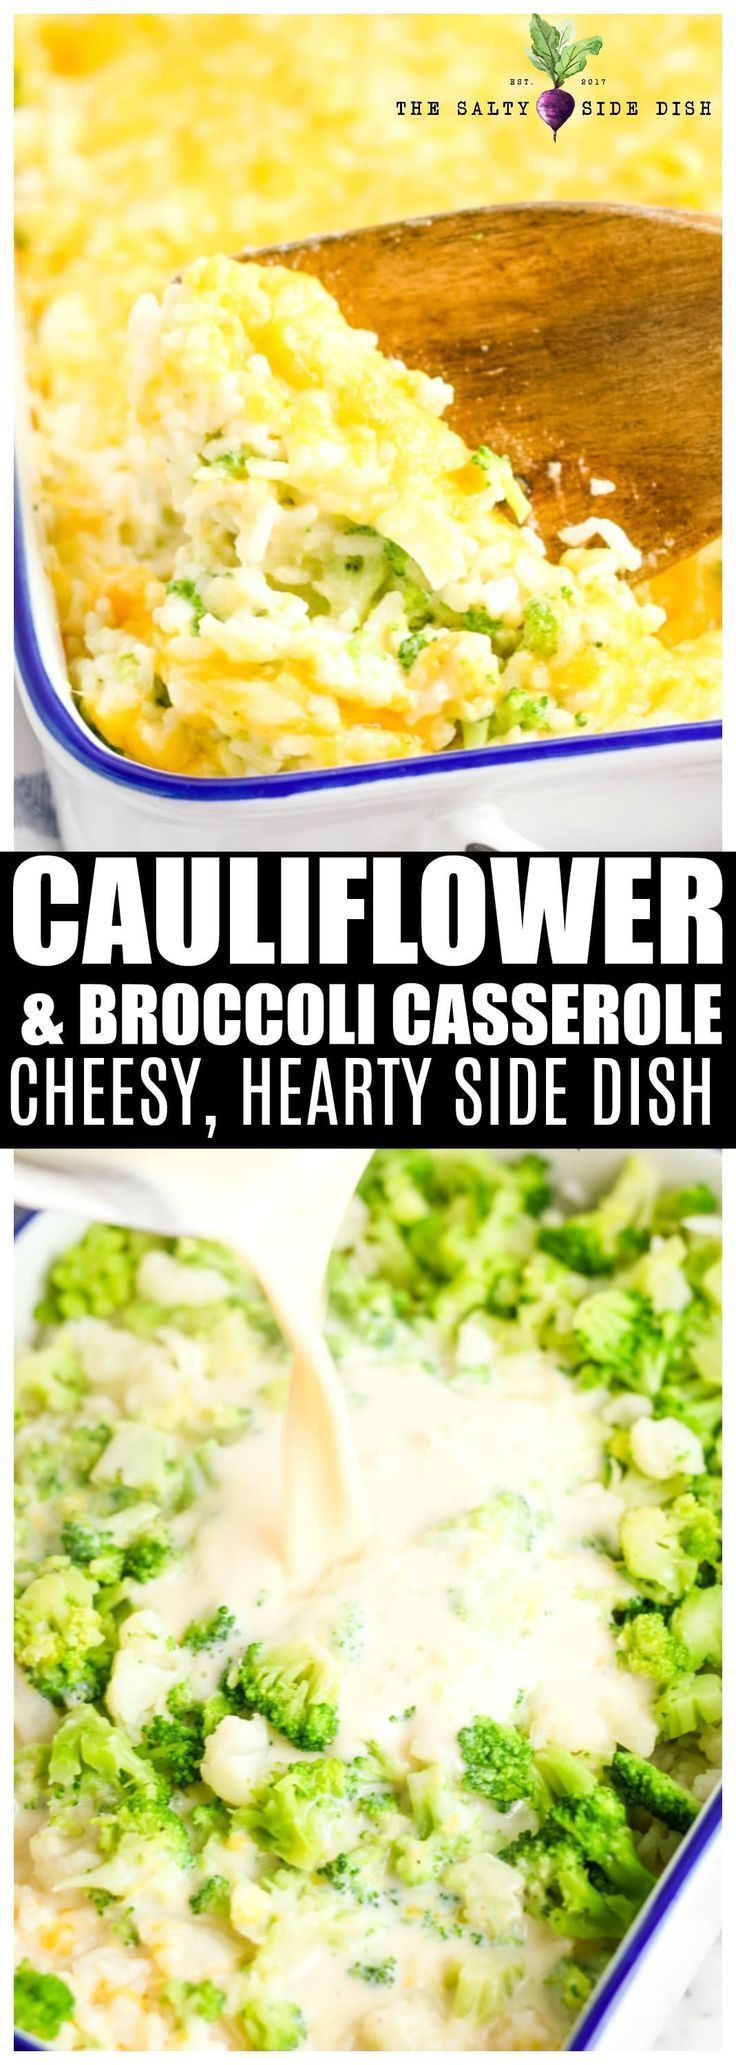 Cauliflower Casserole, or rather a Cheesy Broccoli Cauliflower Rice Casserole, is the perfect hearty side dish #sidedish #casserole #broccoli #cauliflower       Homeland and Climate:  Rice, which is known as the homeland of Southeast China, or rice, is cultivated in every continent except Antarctica. Paddy, which is the natural plant of tropical regions, grows in warm regions with plenty of rain. In our country, which i... #Broccoli #Casserole #Cauliflower #cheese #Dish #loaded #Salty #Side